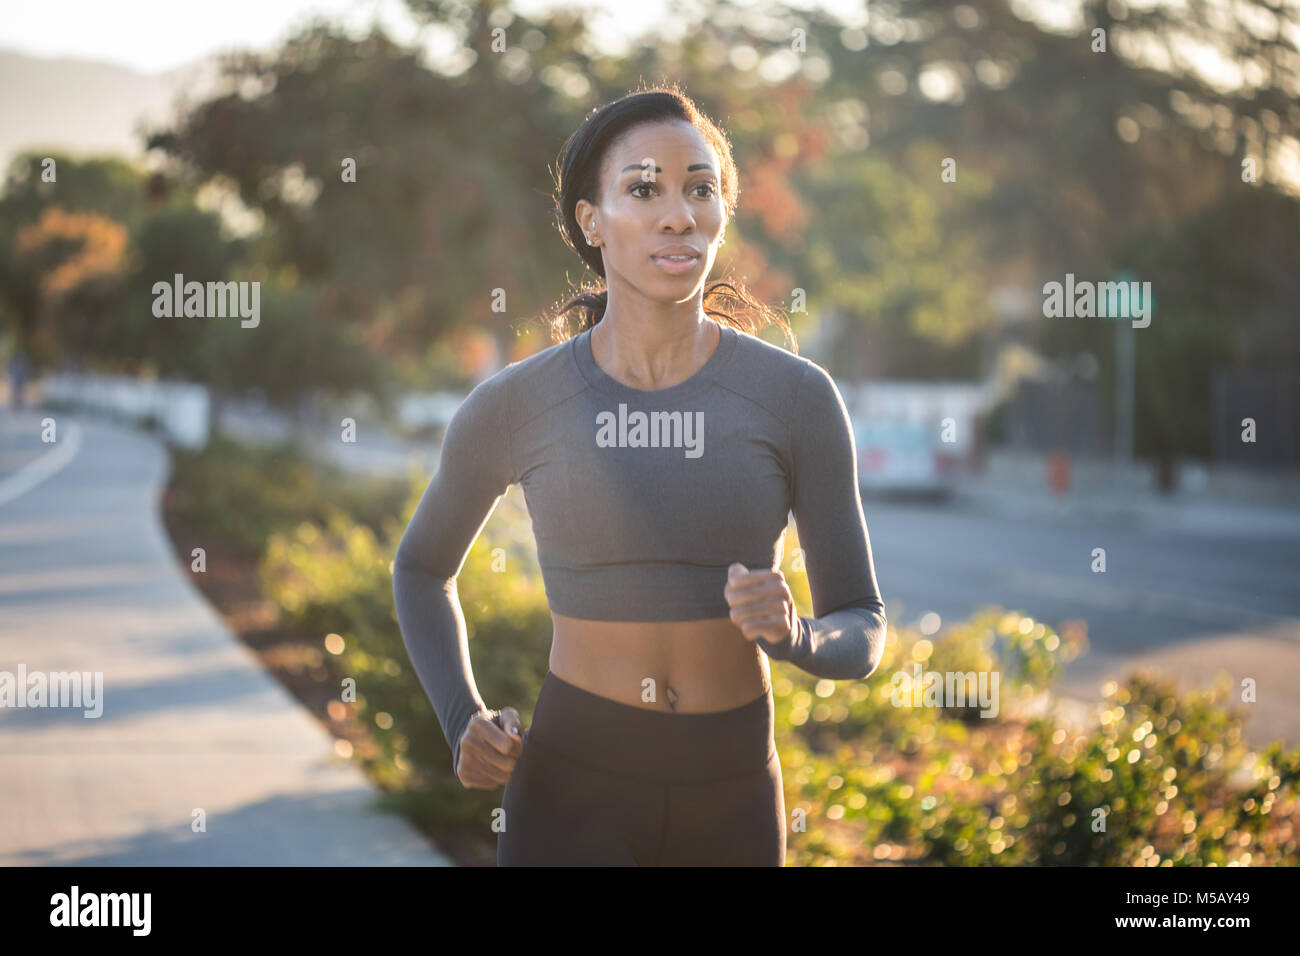 Inspired young woman running in the golden sunlight in the city park - Stock Image